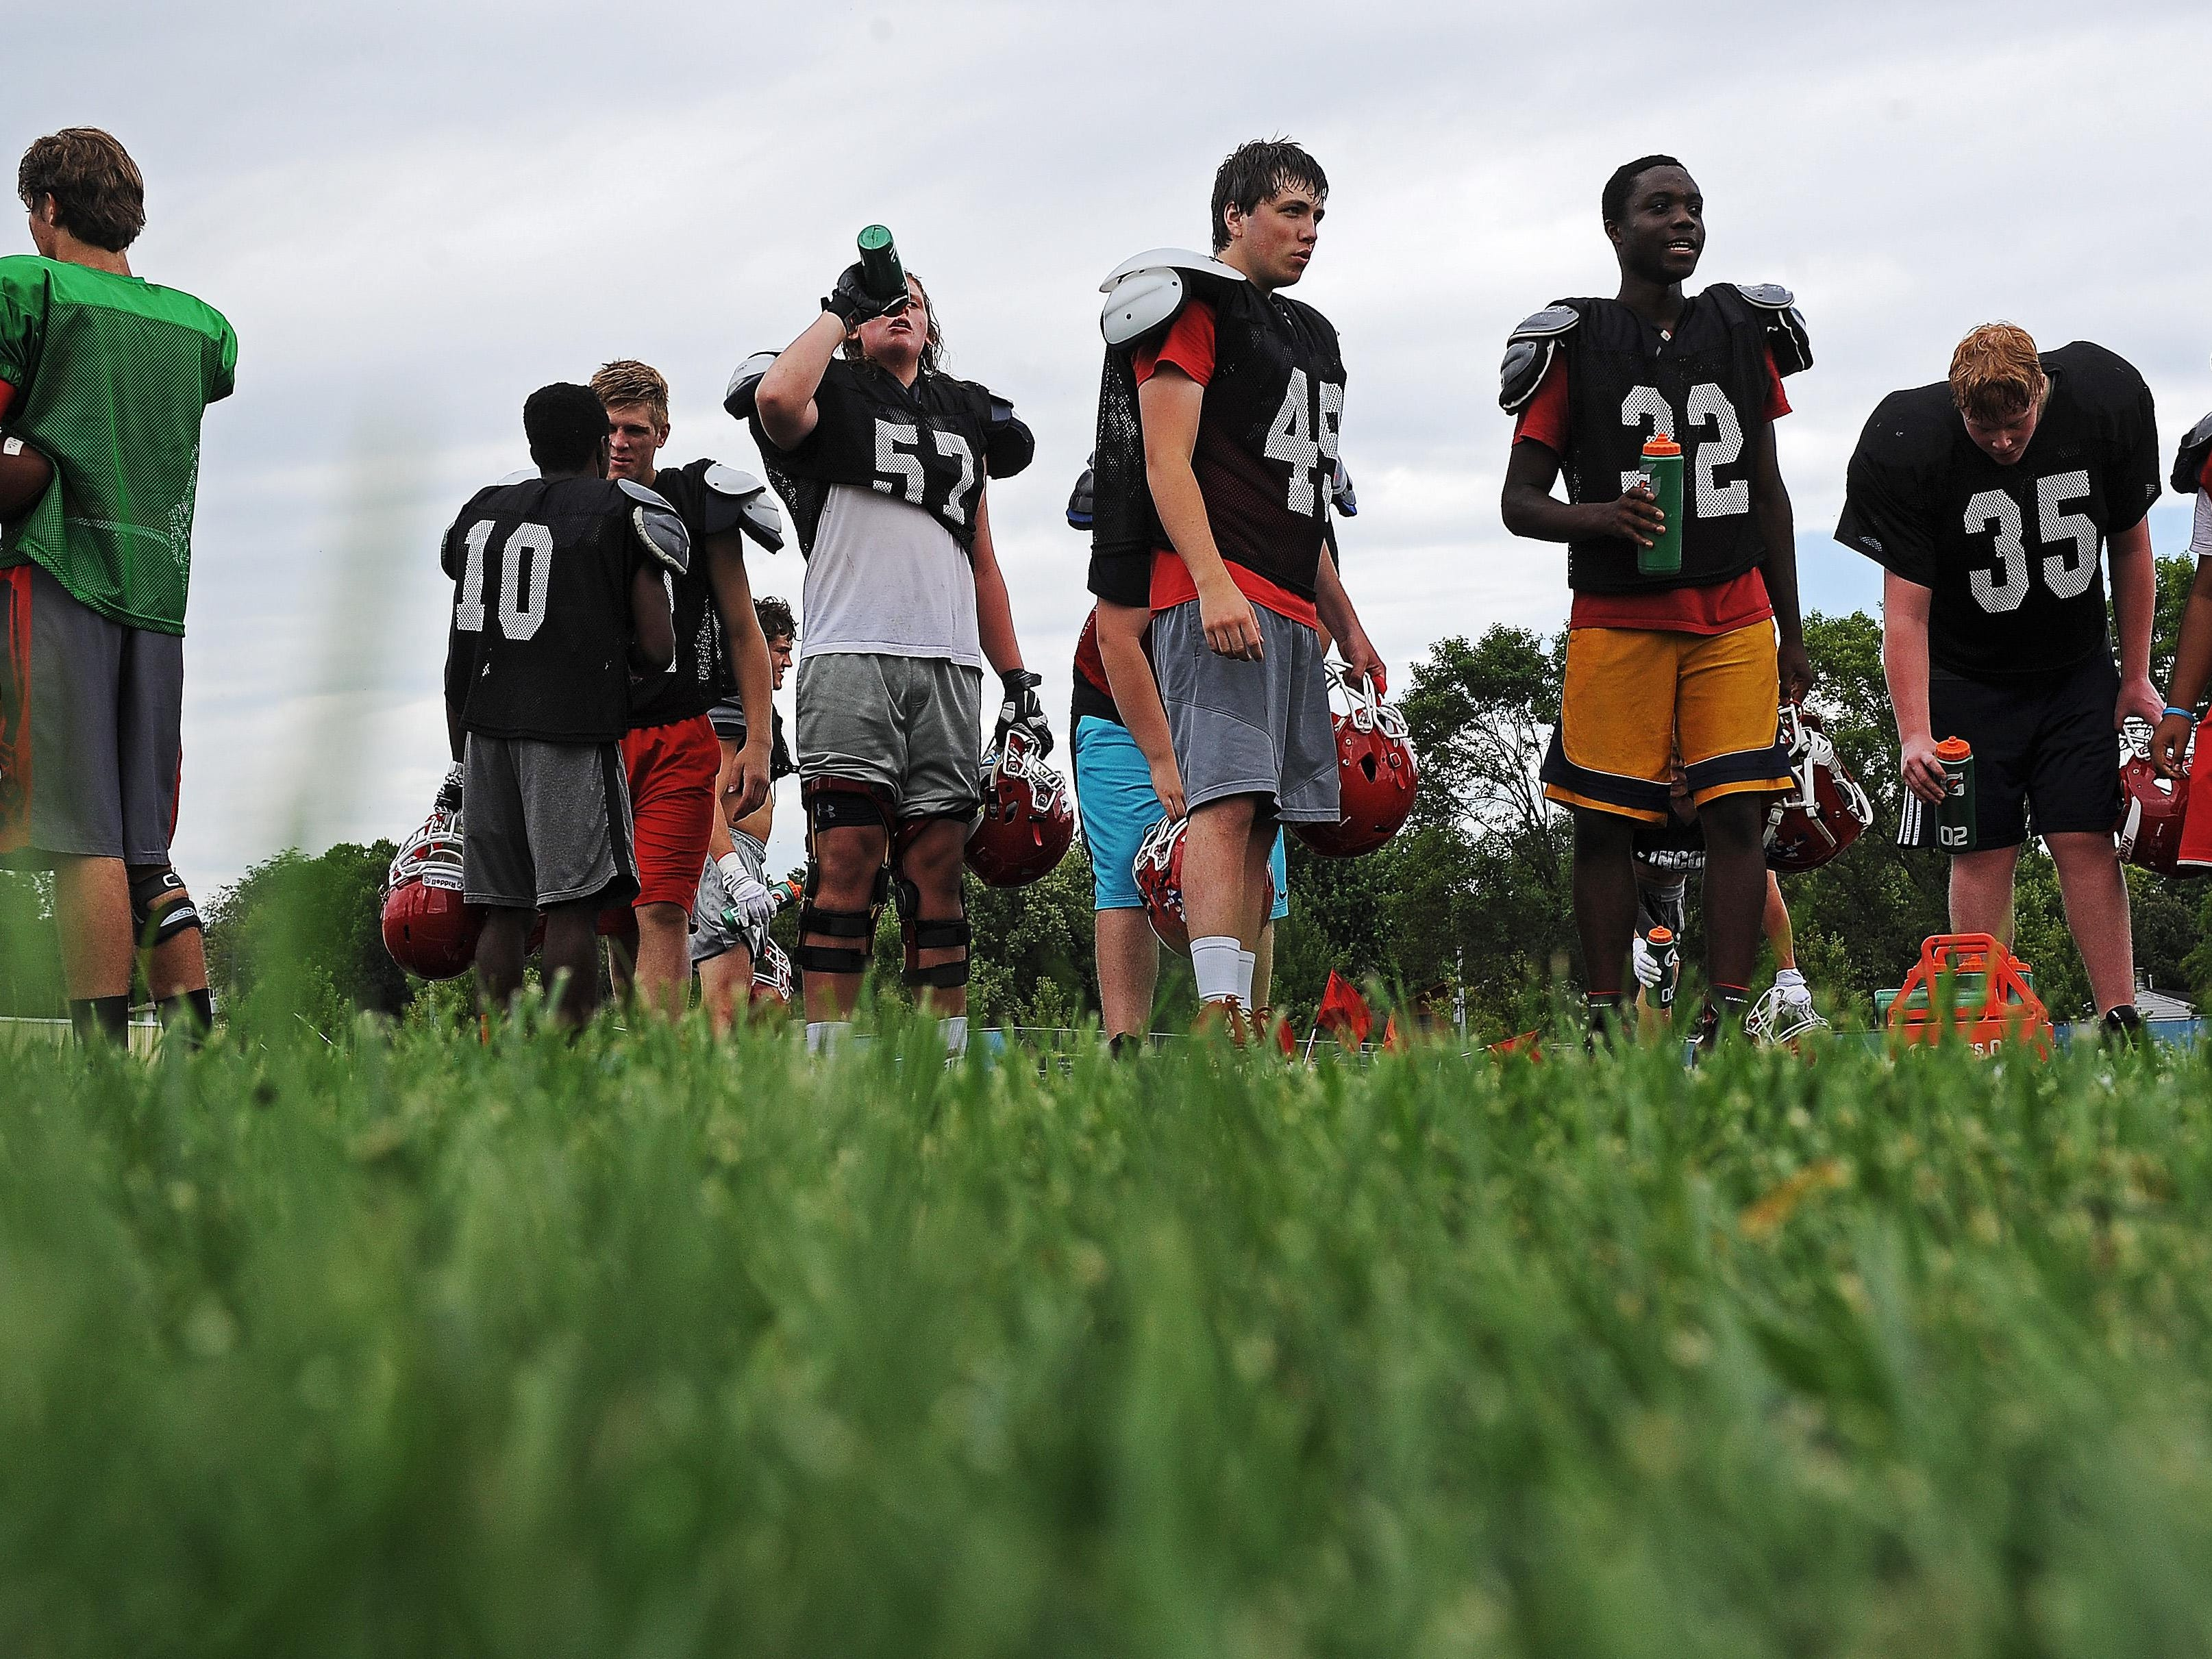 Lincoln High School football players get a drink during a Lincoln High School football practice Thursday, Aug. 11, 2016, at Lincoln High School in Sioux Falls.